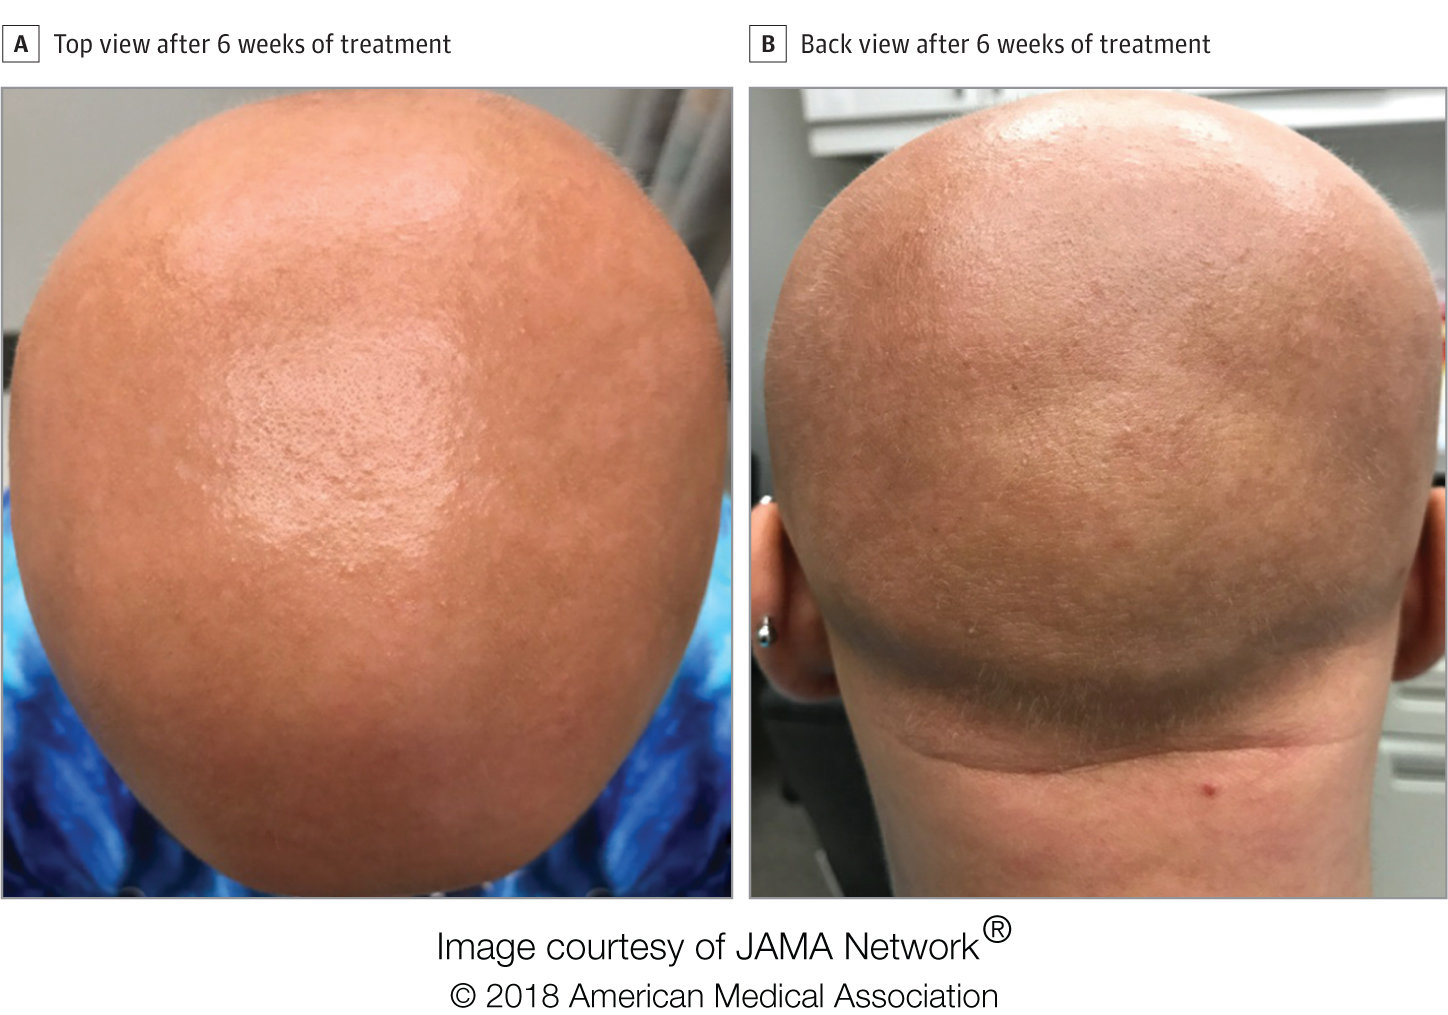 Eczema Drug Restores Hair Growth In Patient With